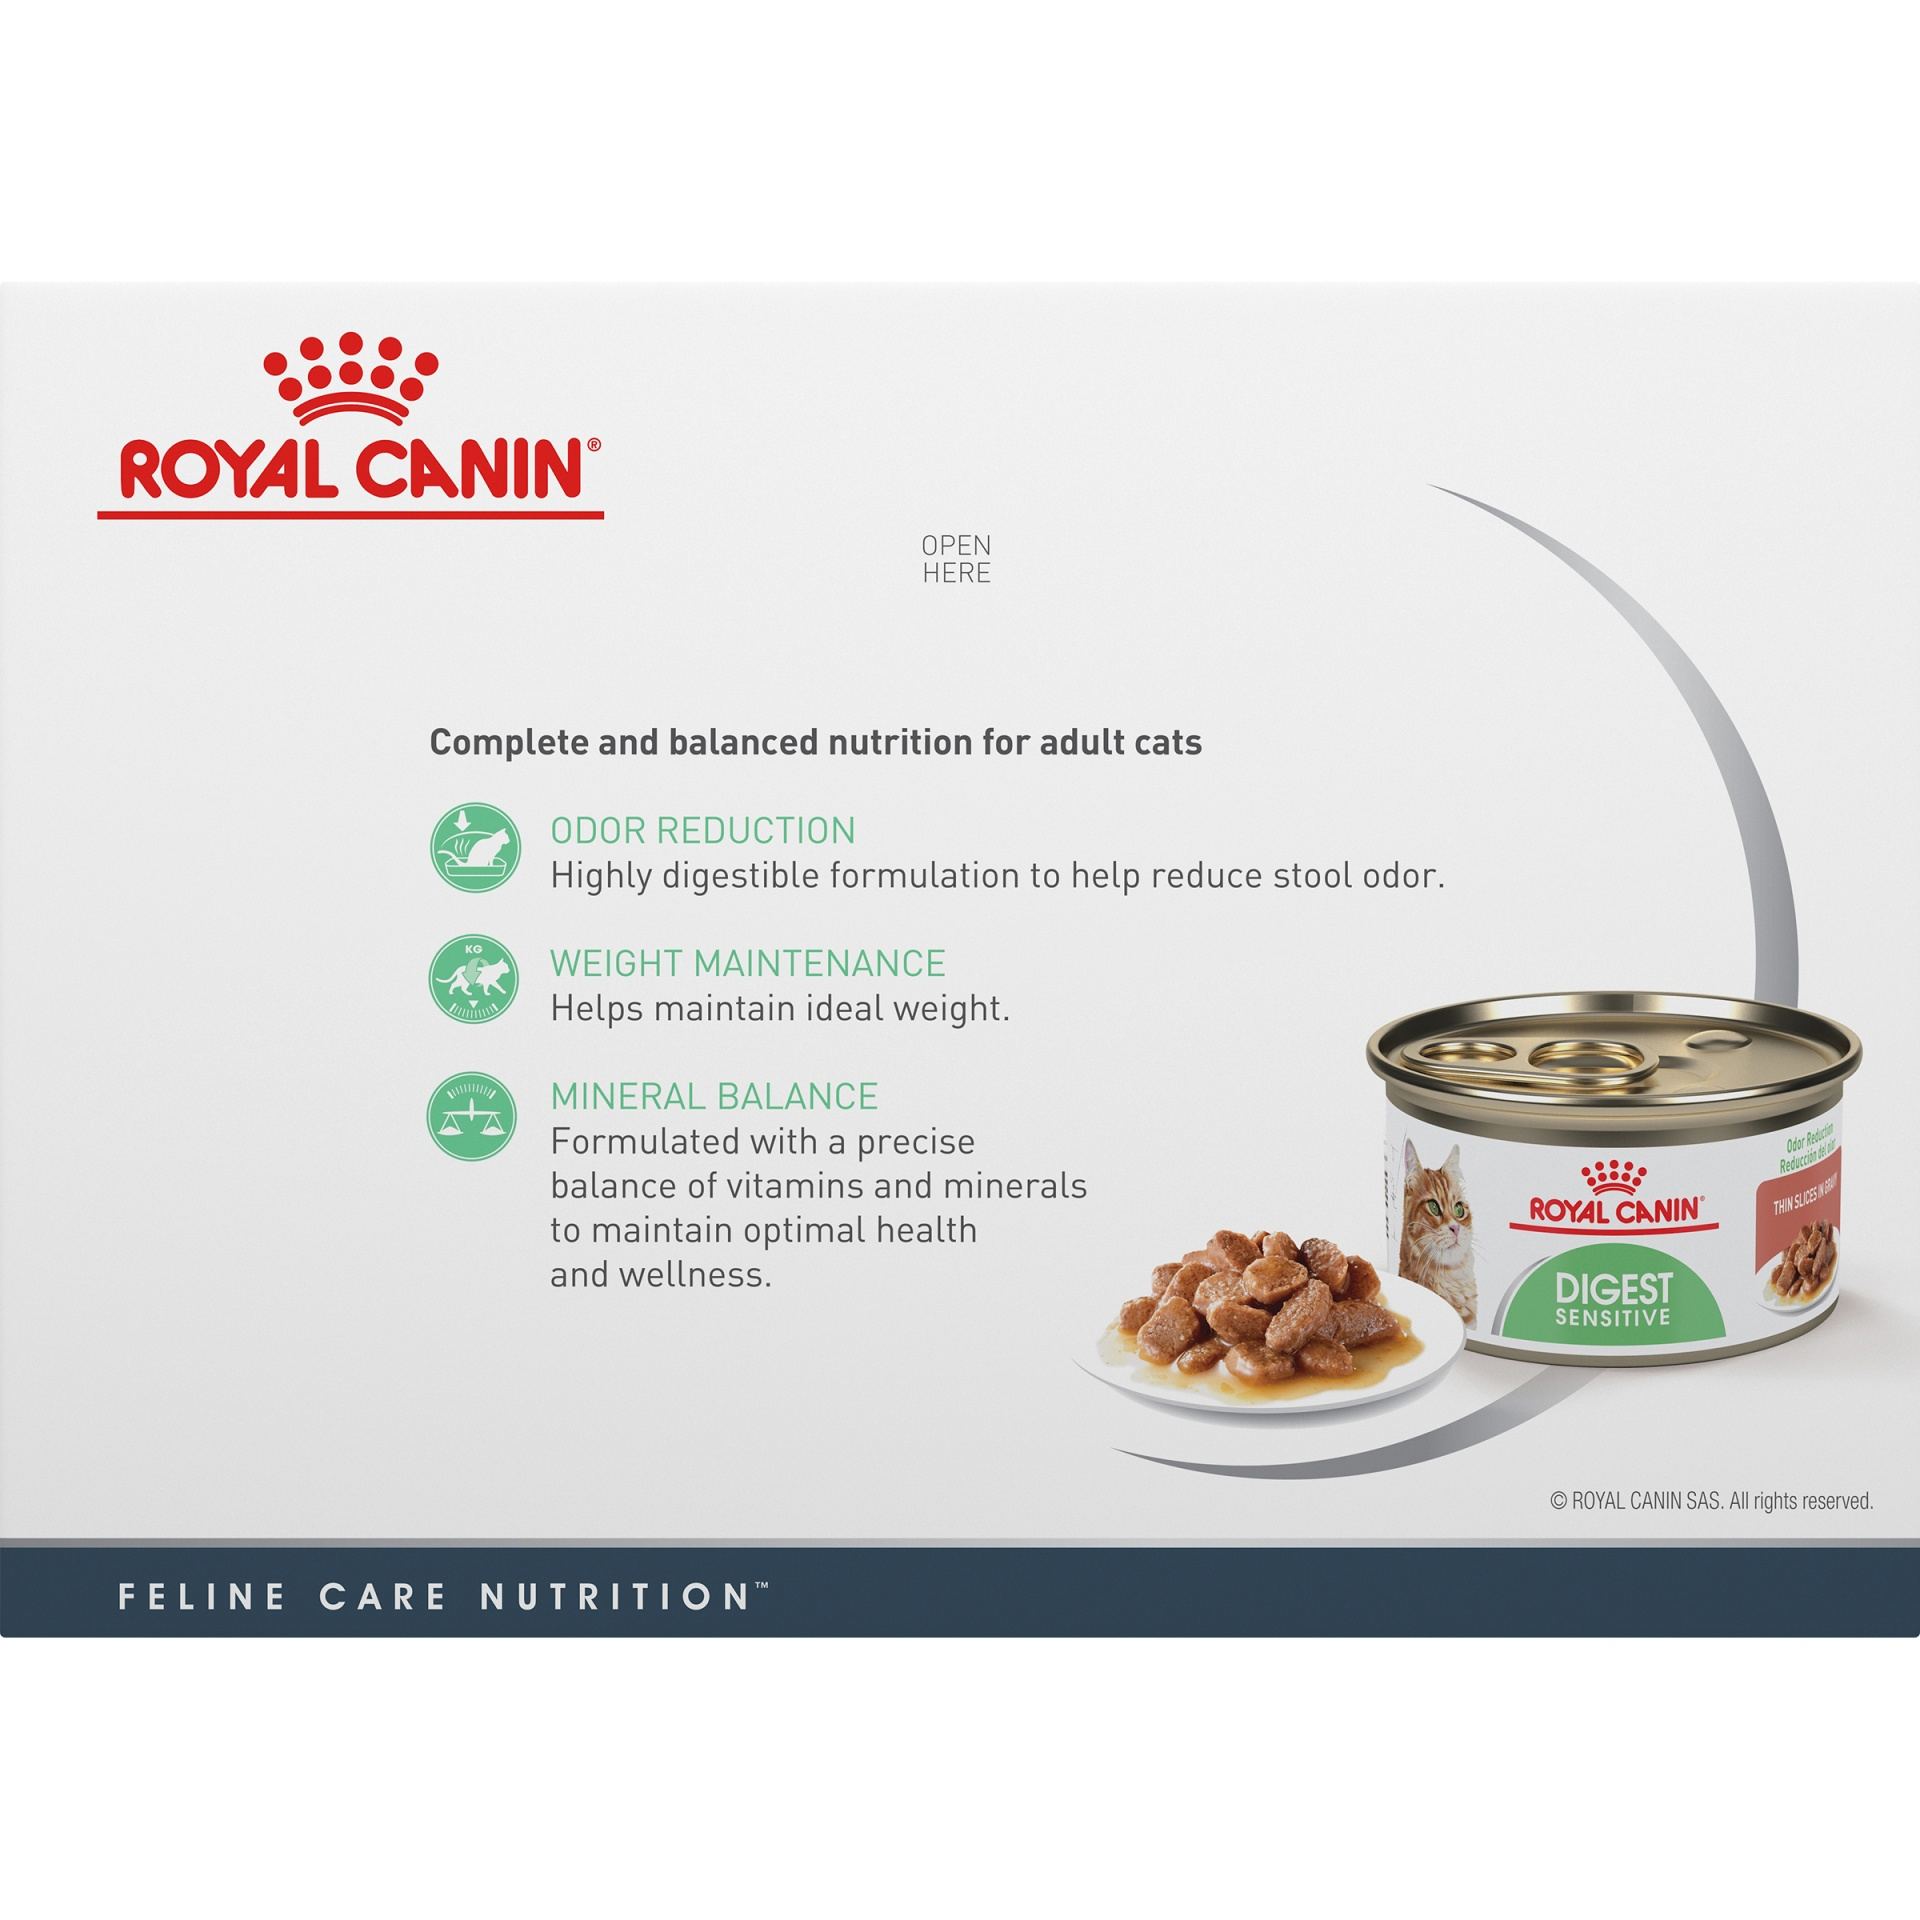 slide 6 of 9, Royal Canin Feline Care Nutrition Digest Sensitive Thin Slices In Gravy Canned Wet Cat Food,